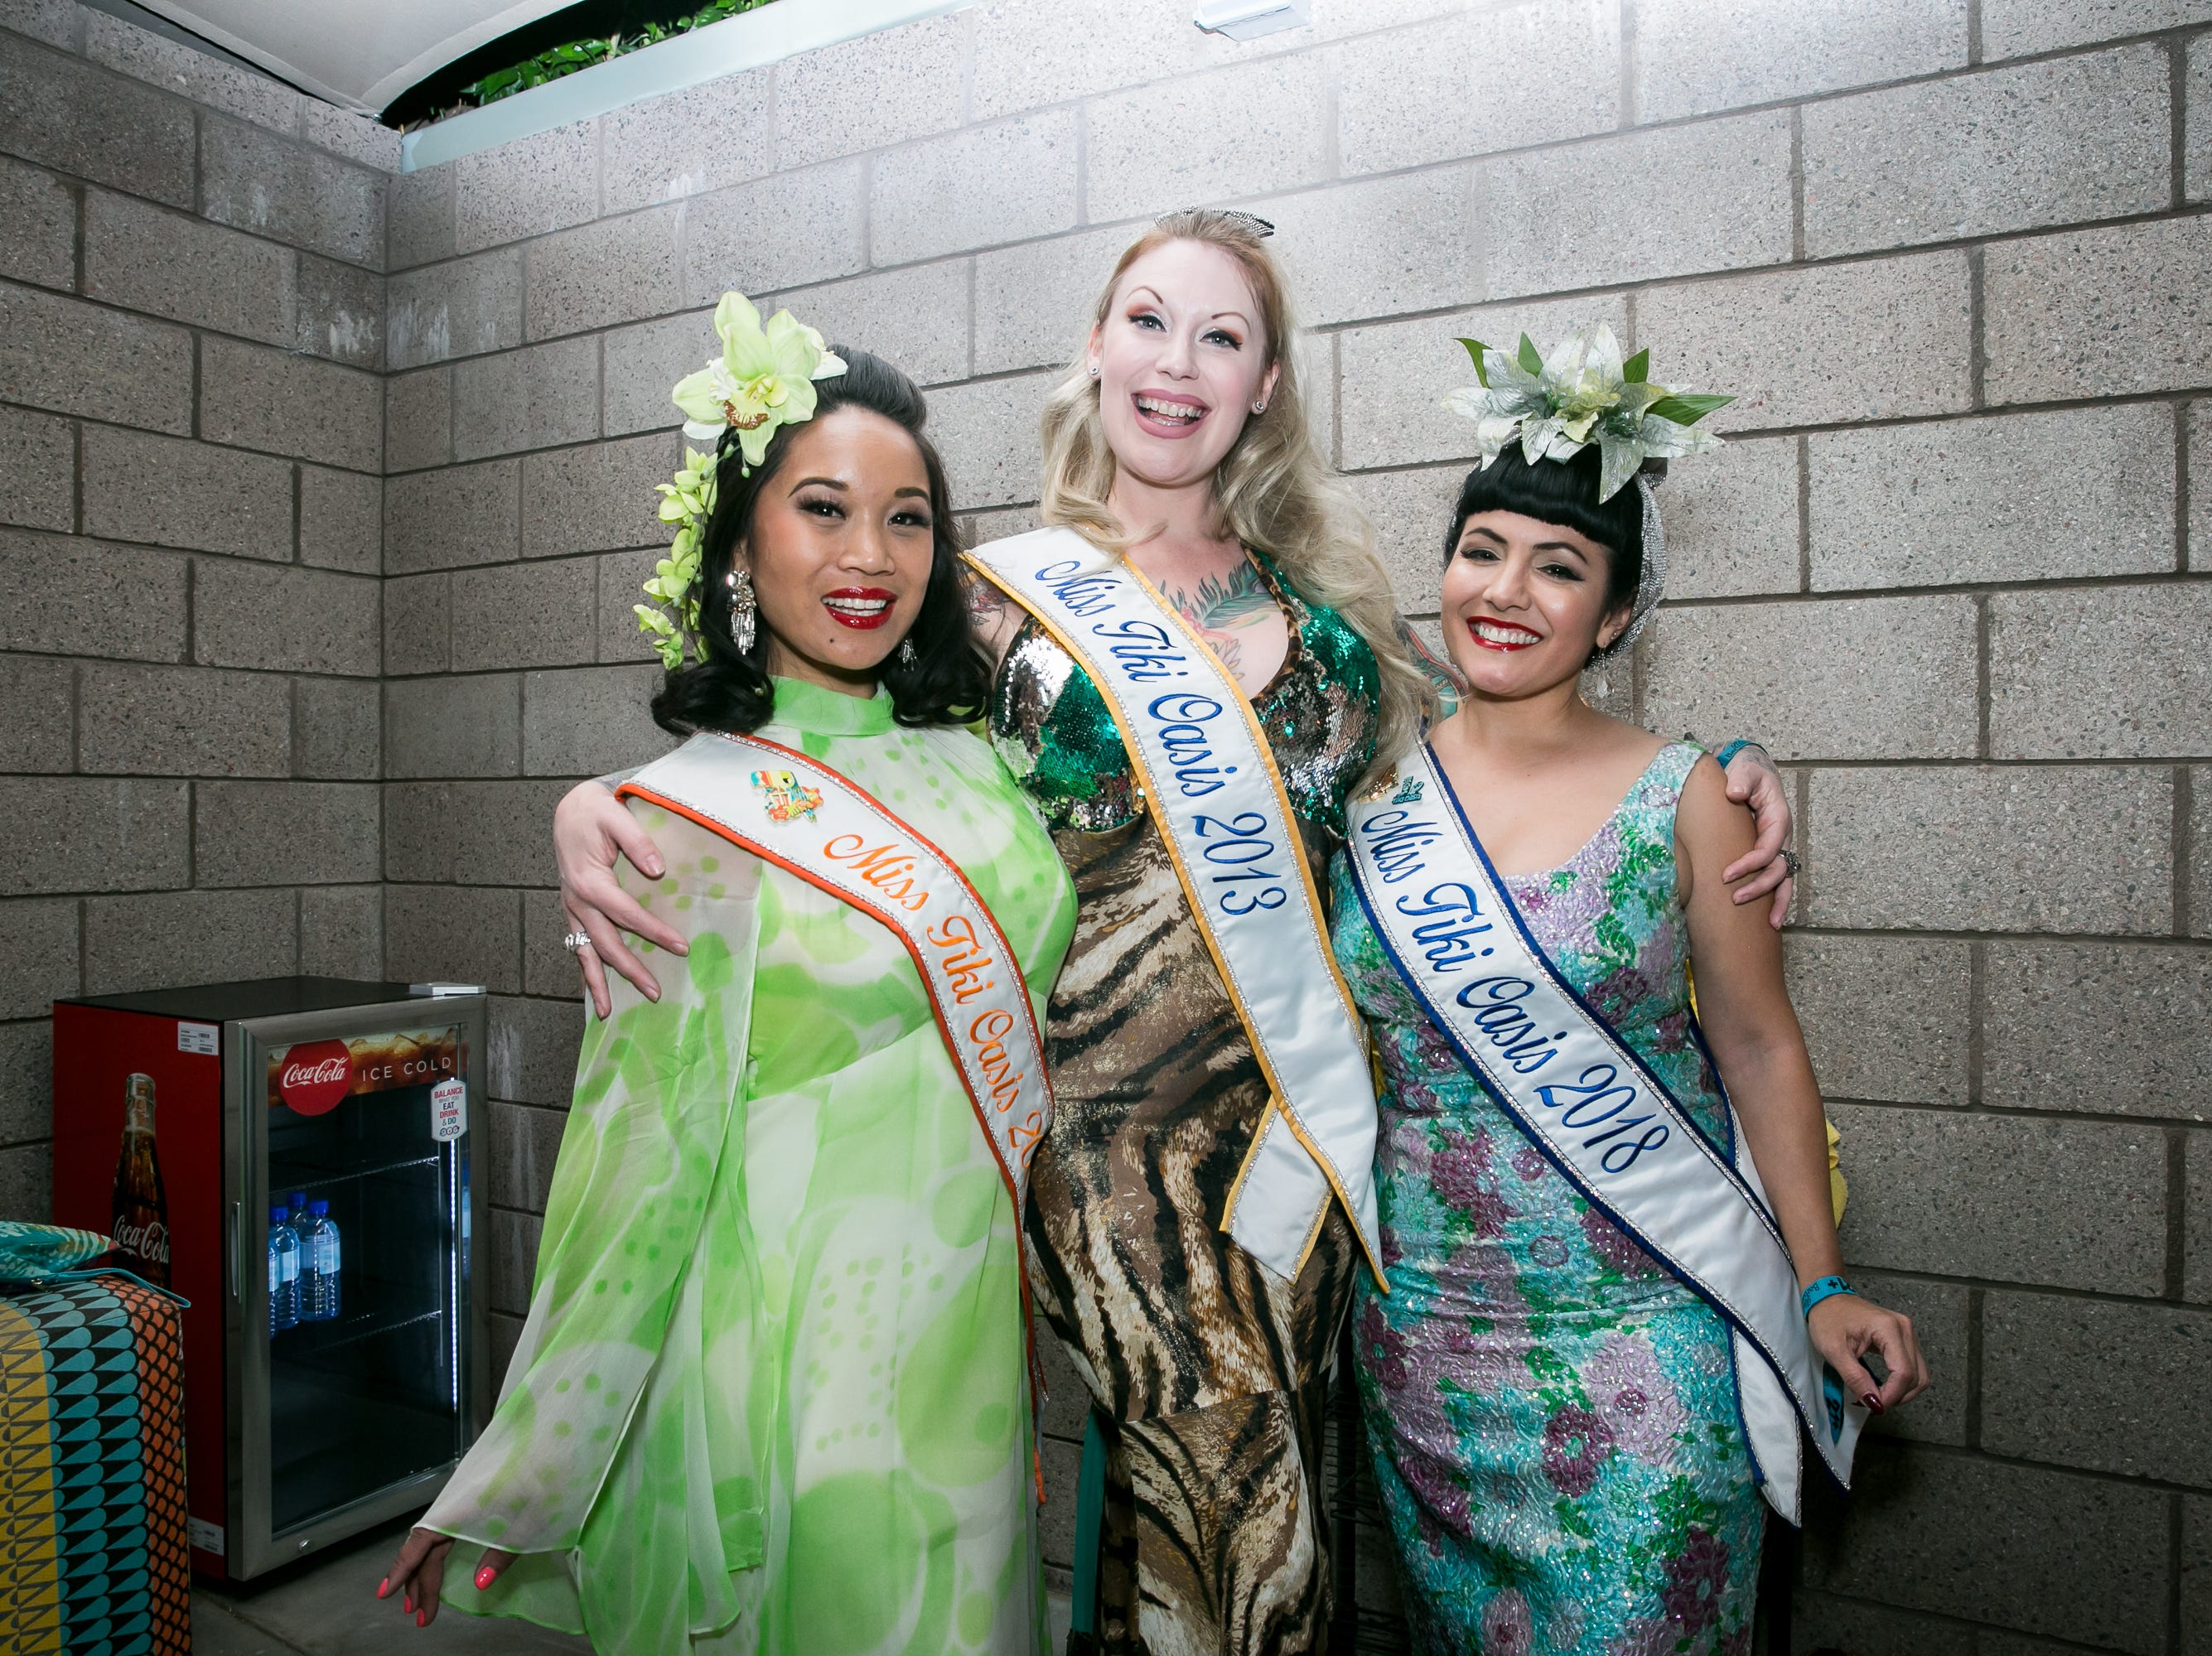 The previous Miss Tiki Oasis girls provided many photo opportunities during Arizona Tiki Oasis at Hotel Valley Ho in Scottsdale on  April 12, 2019.